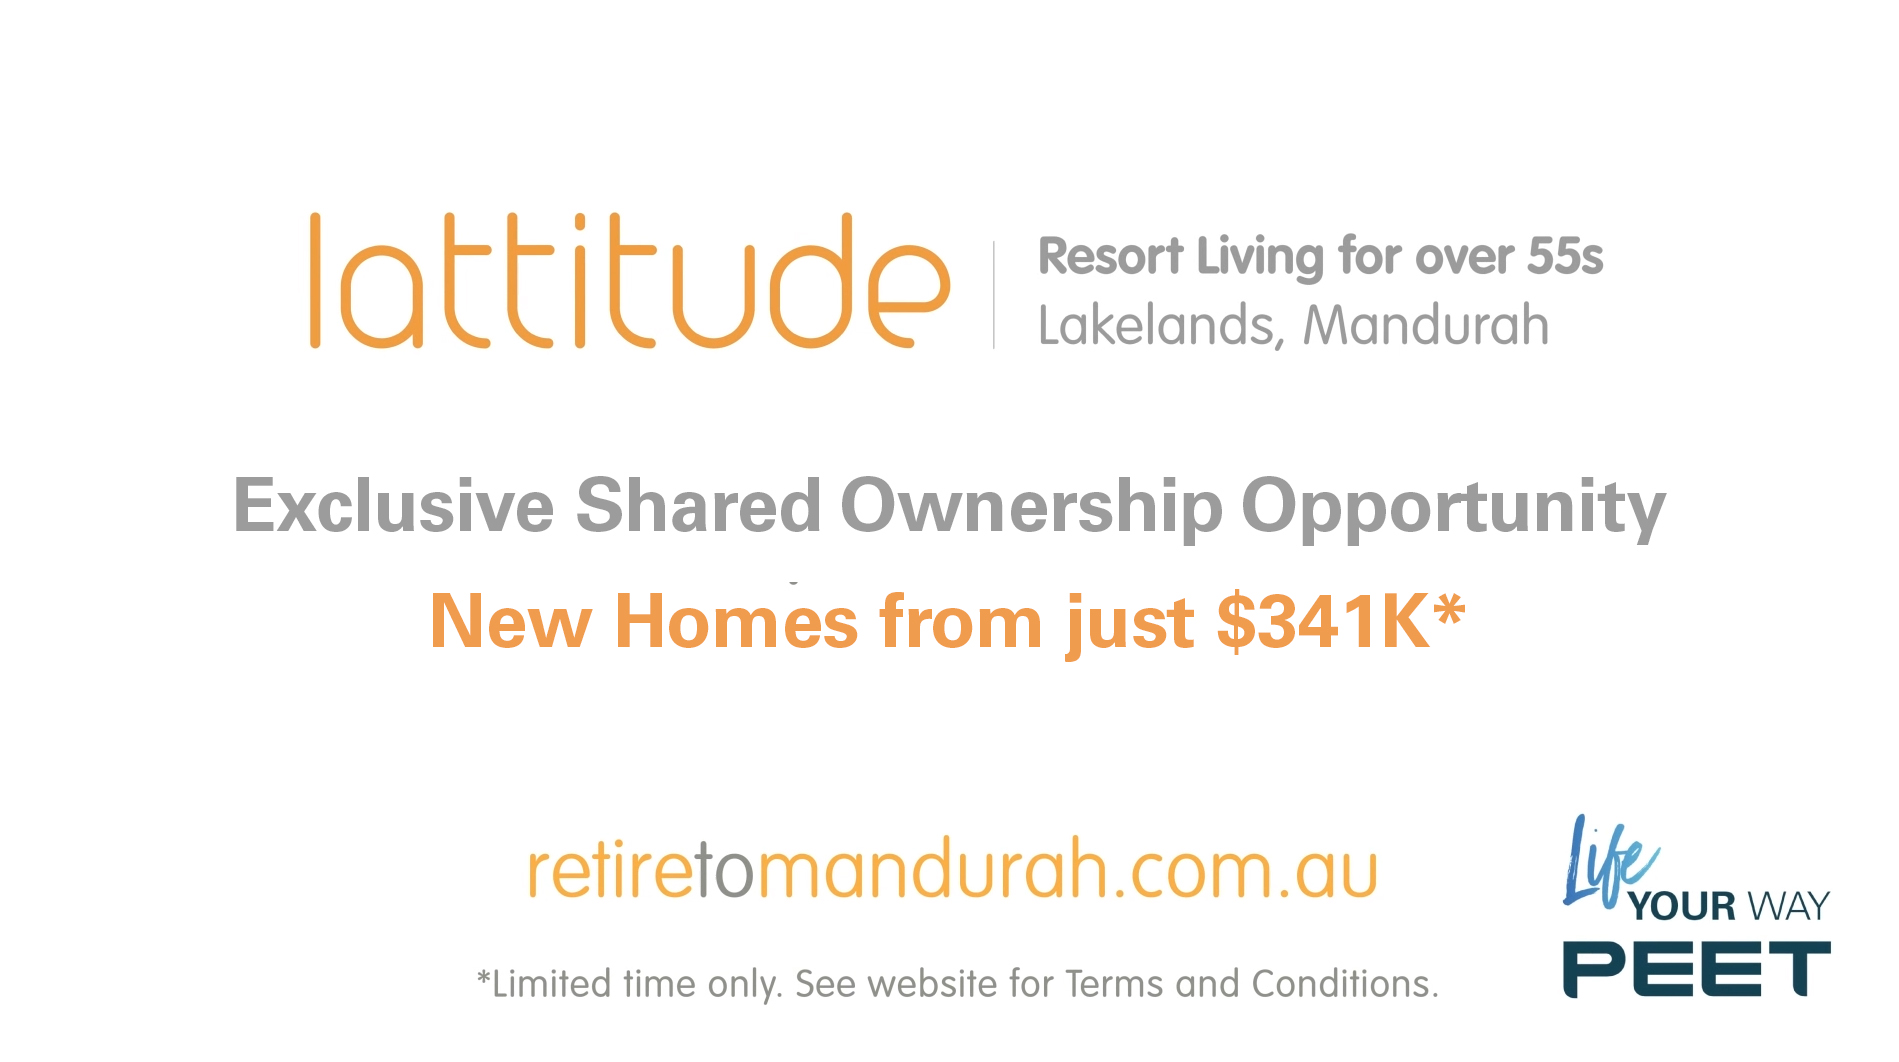 shared ownership opportunity